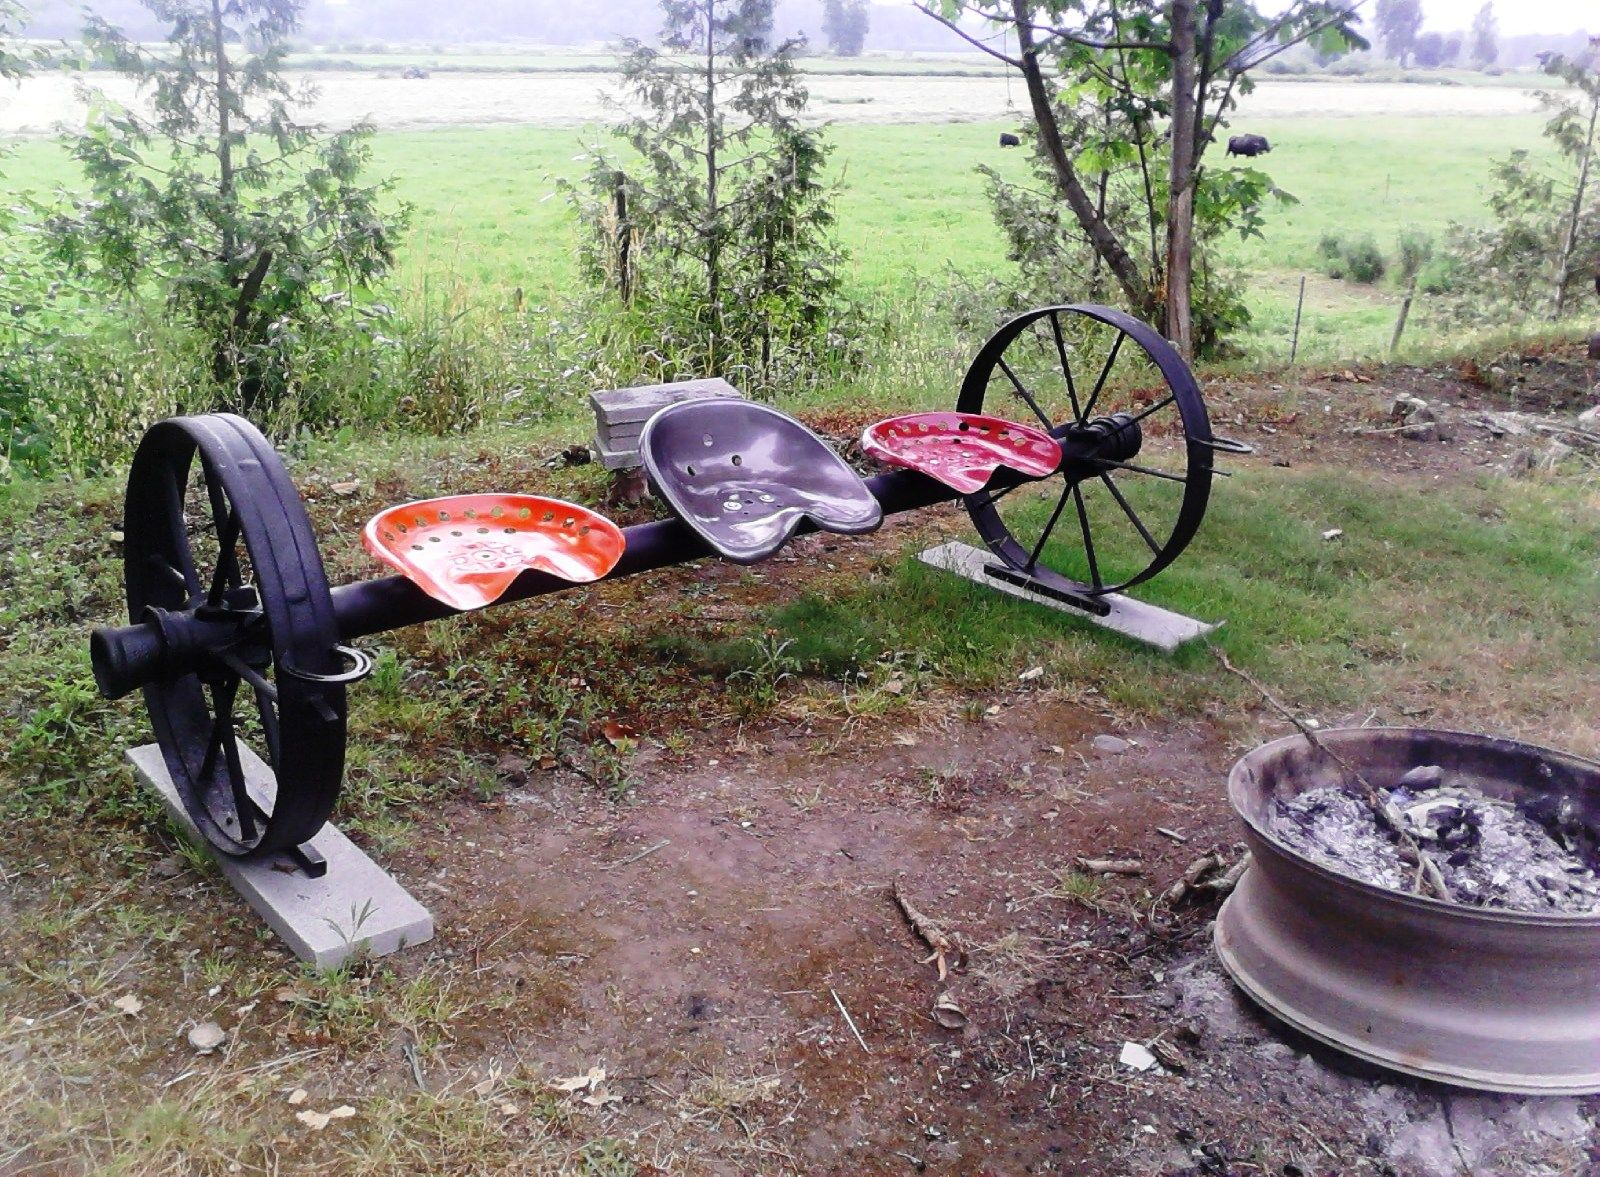 Metal Tractor Seat With Wheels : Bench seat tractor steel wheels vintage campfire yard art